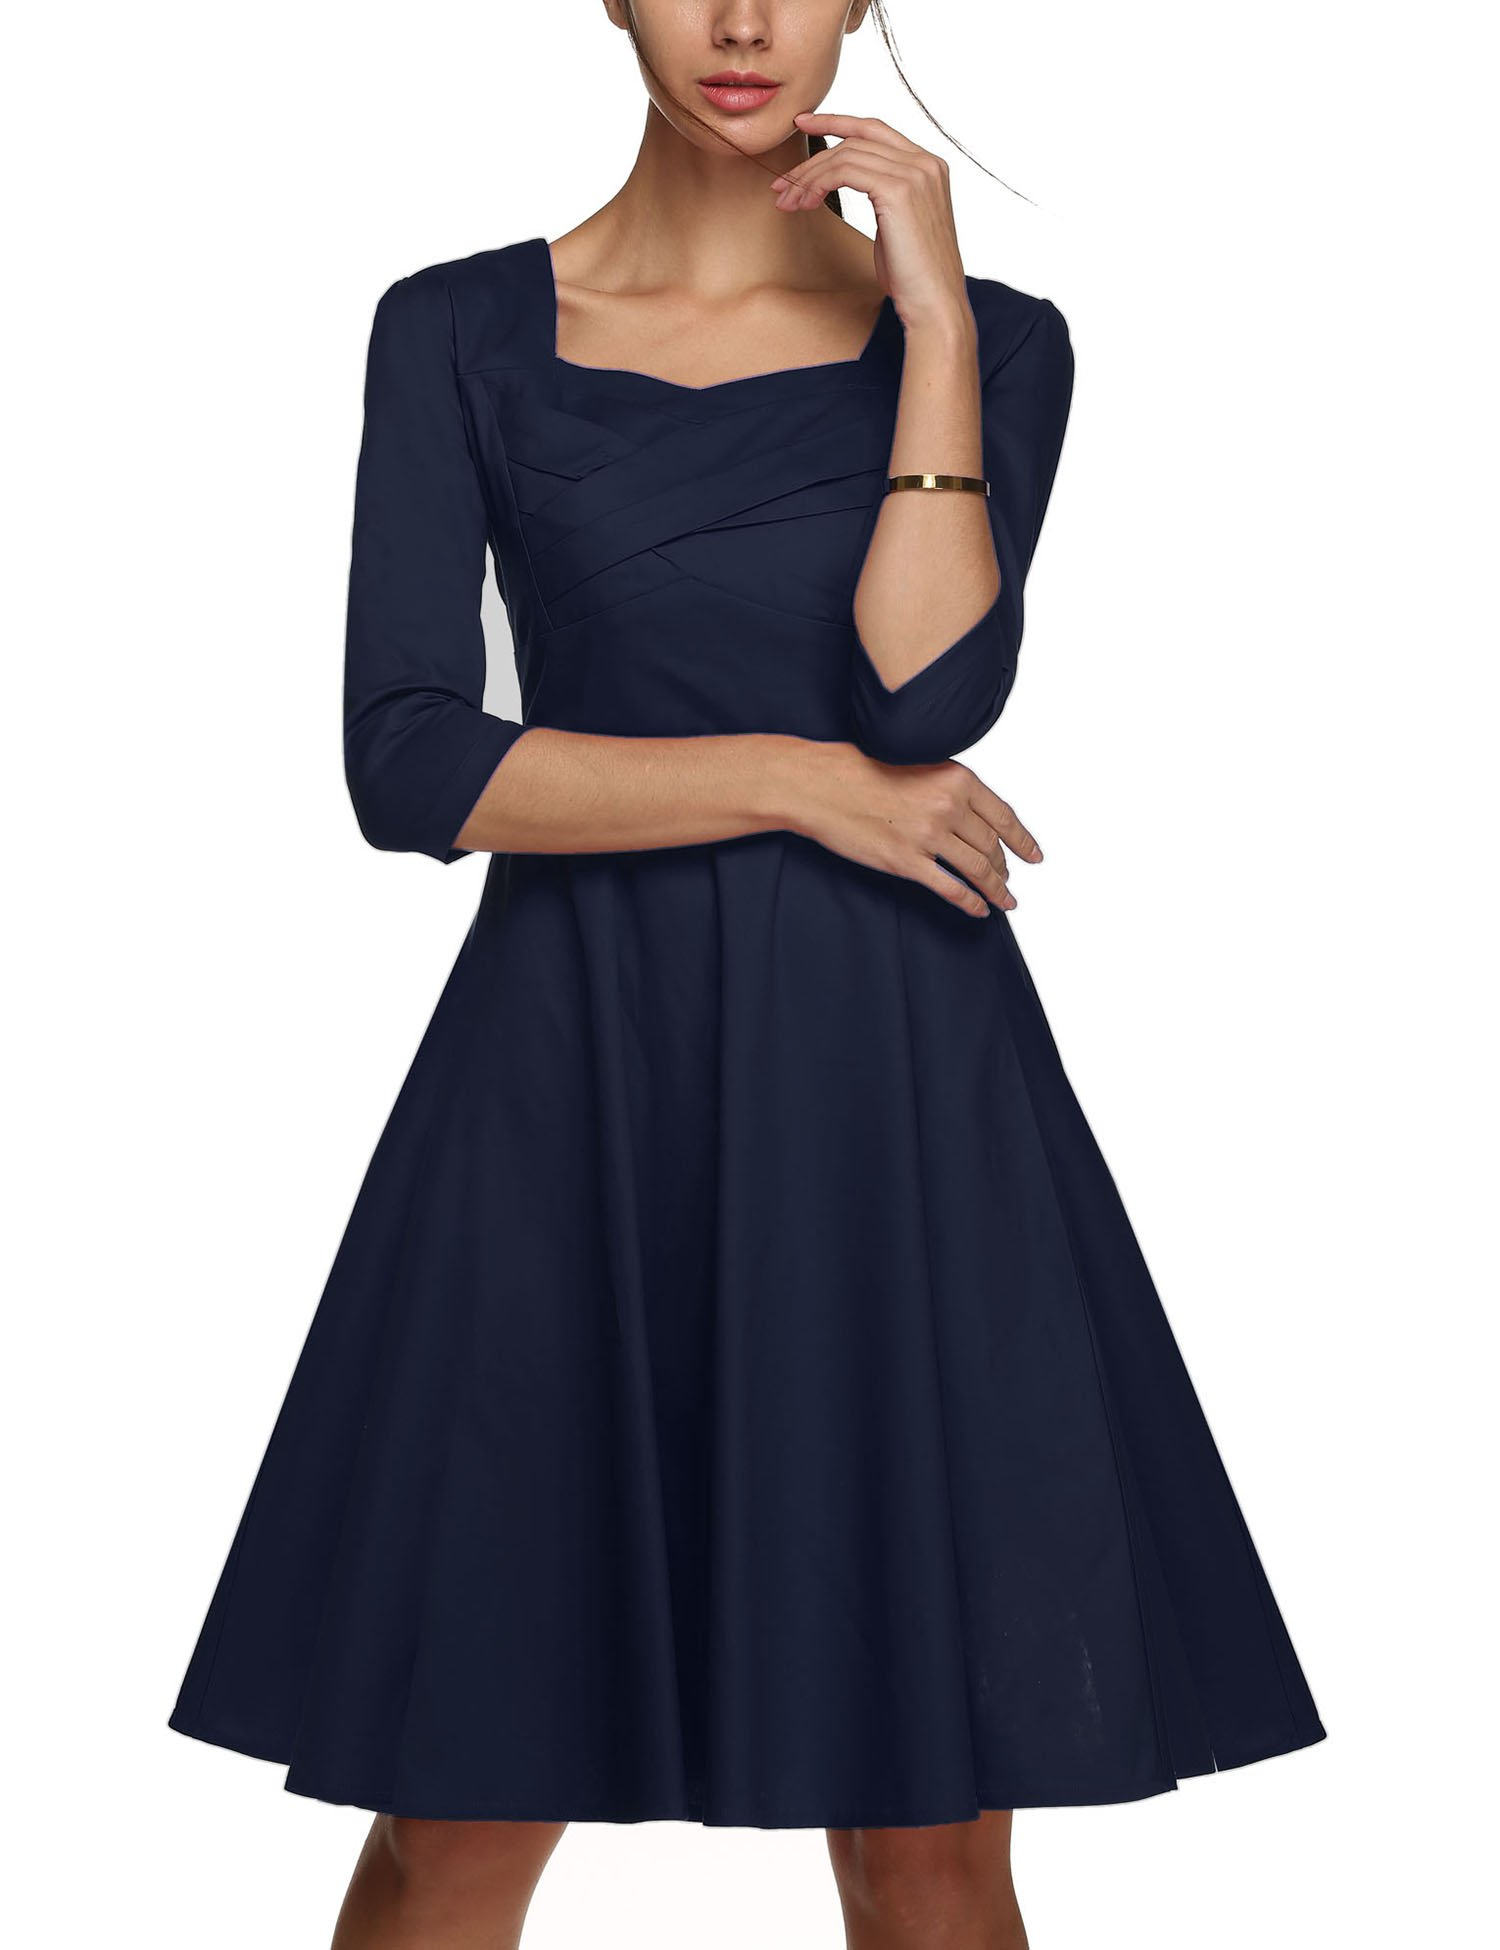 UpBeauty Women's 3 4 Sleeve Fit and Flare Swing Classy Vintage Dress,Navy Blue,Large